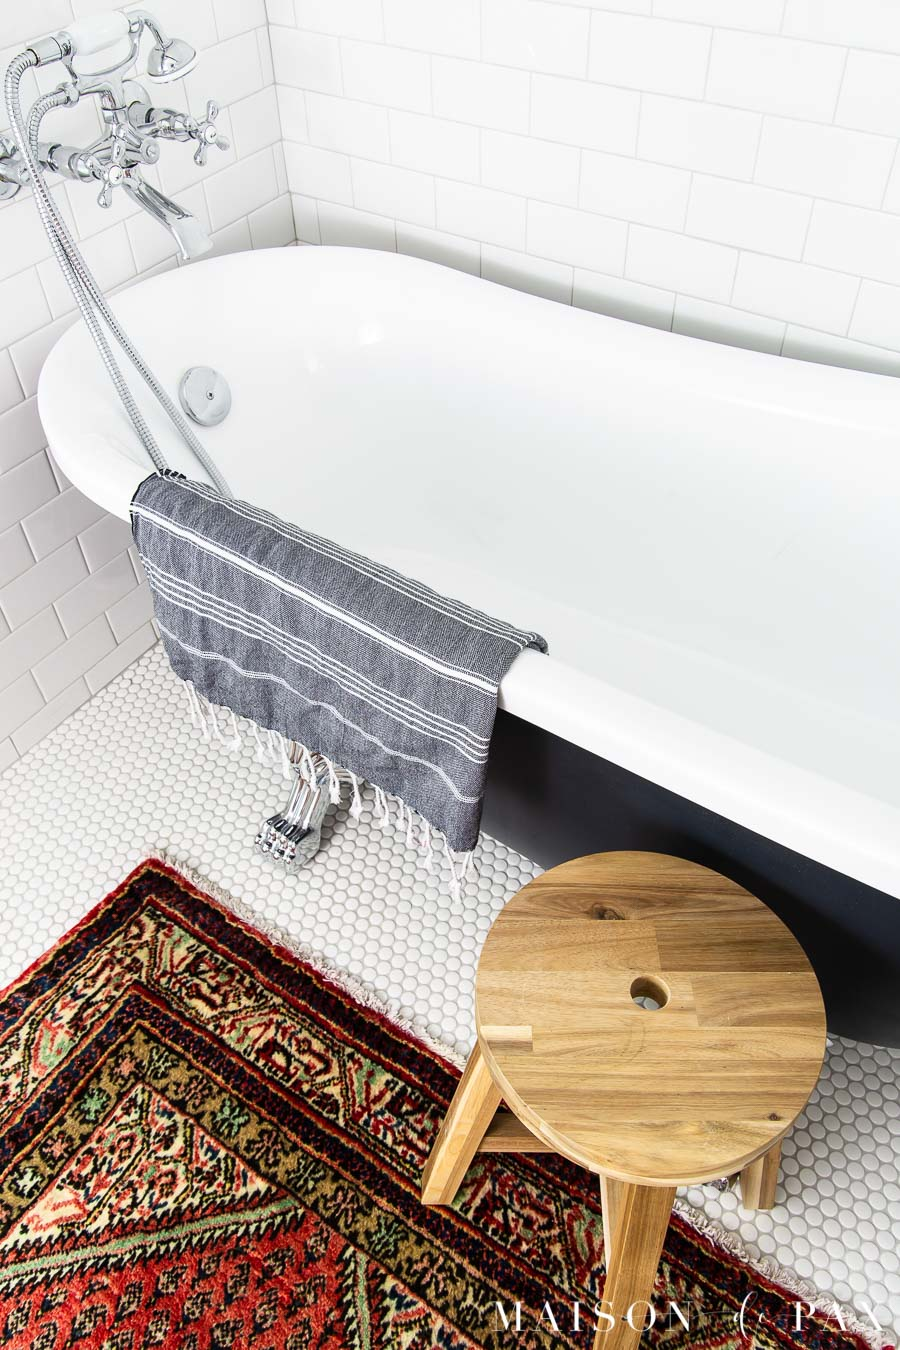 white penny tile on floor beneath black clawfoot tub | Maison de Pax